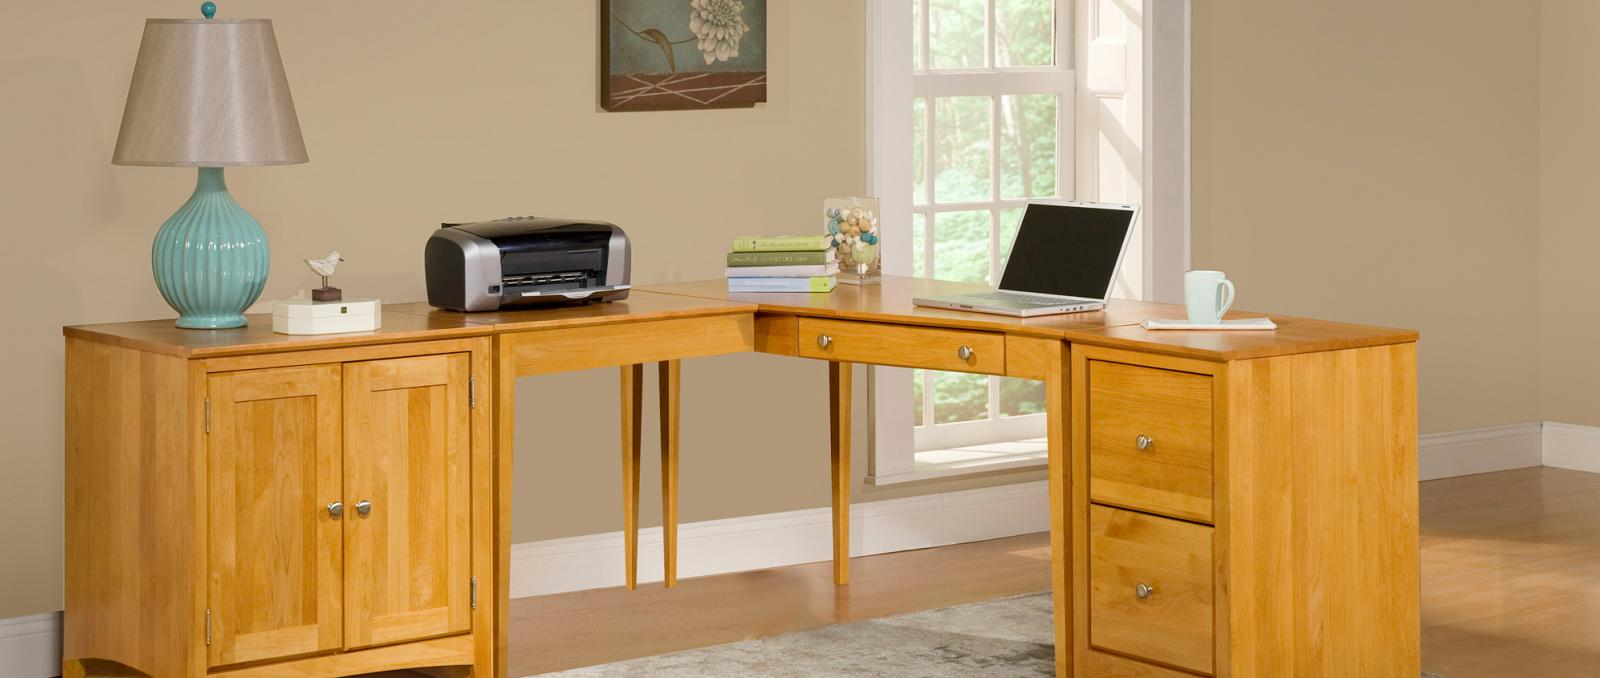 Office Furniture Cary NC Office Chairs Desks - Office furniture usa